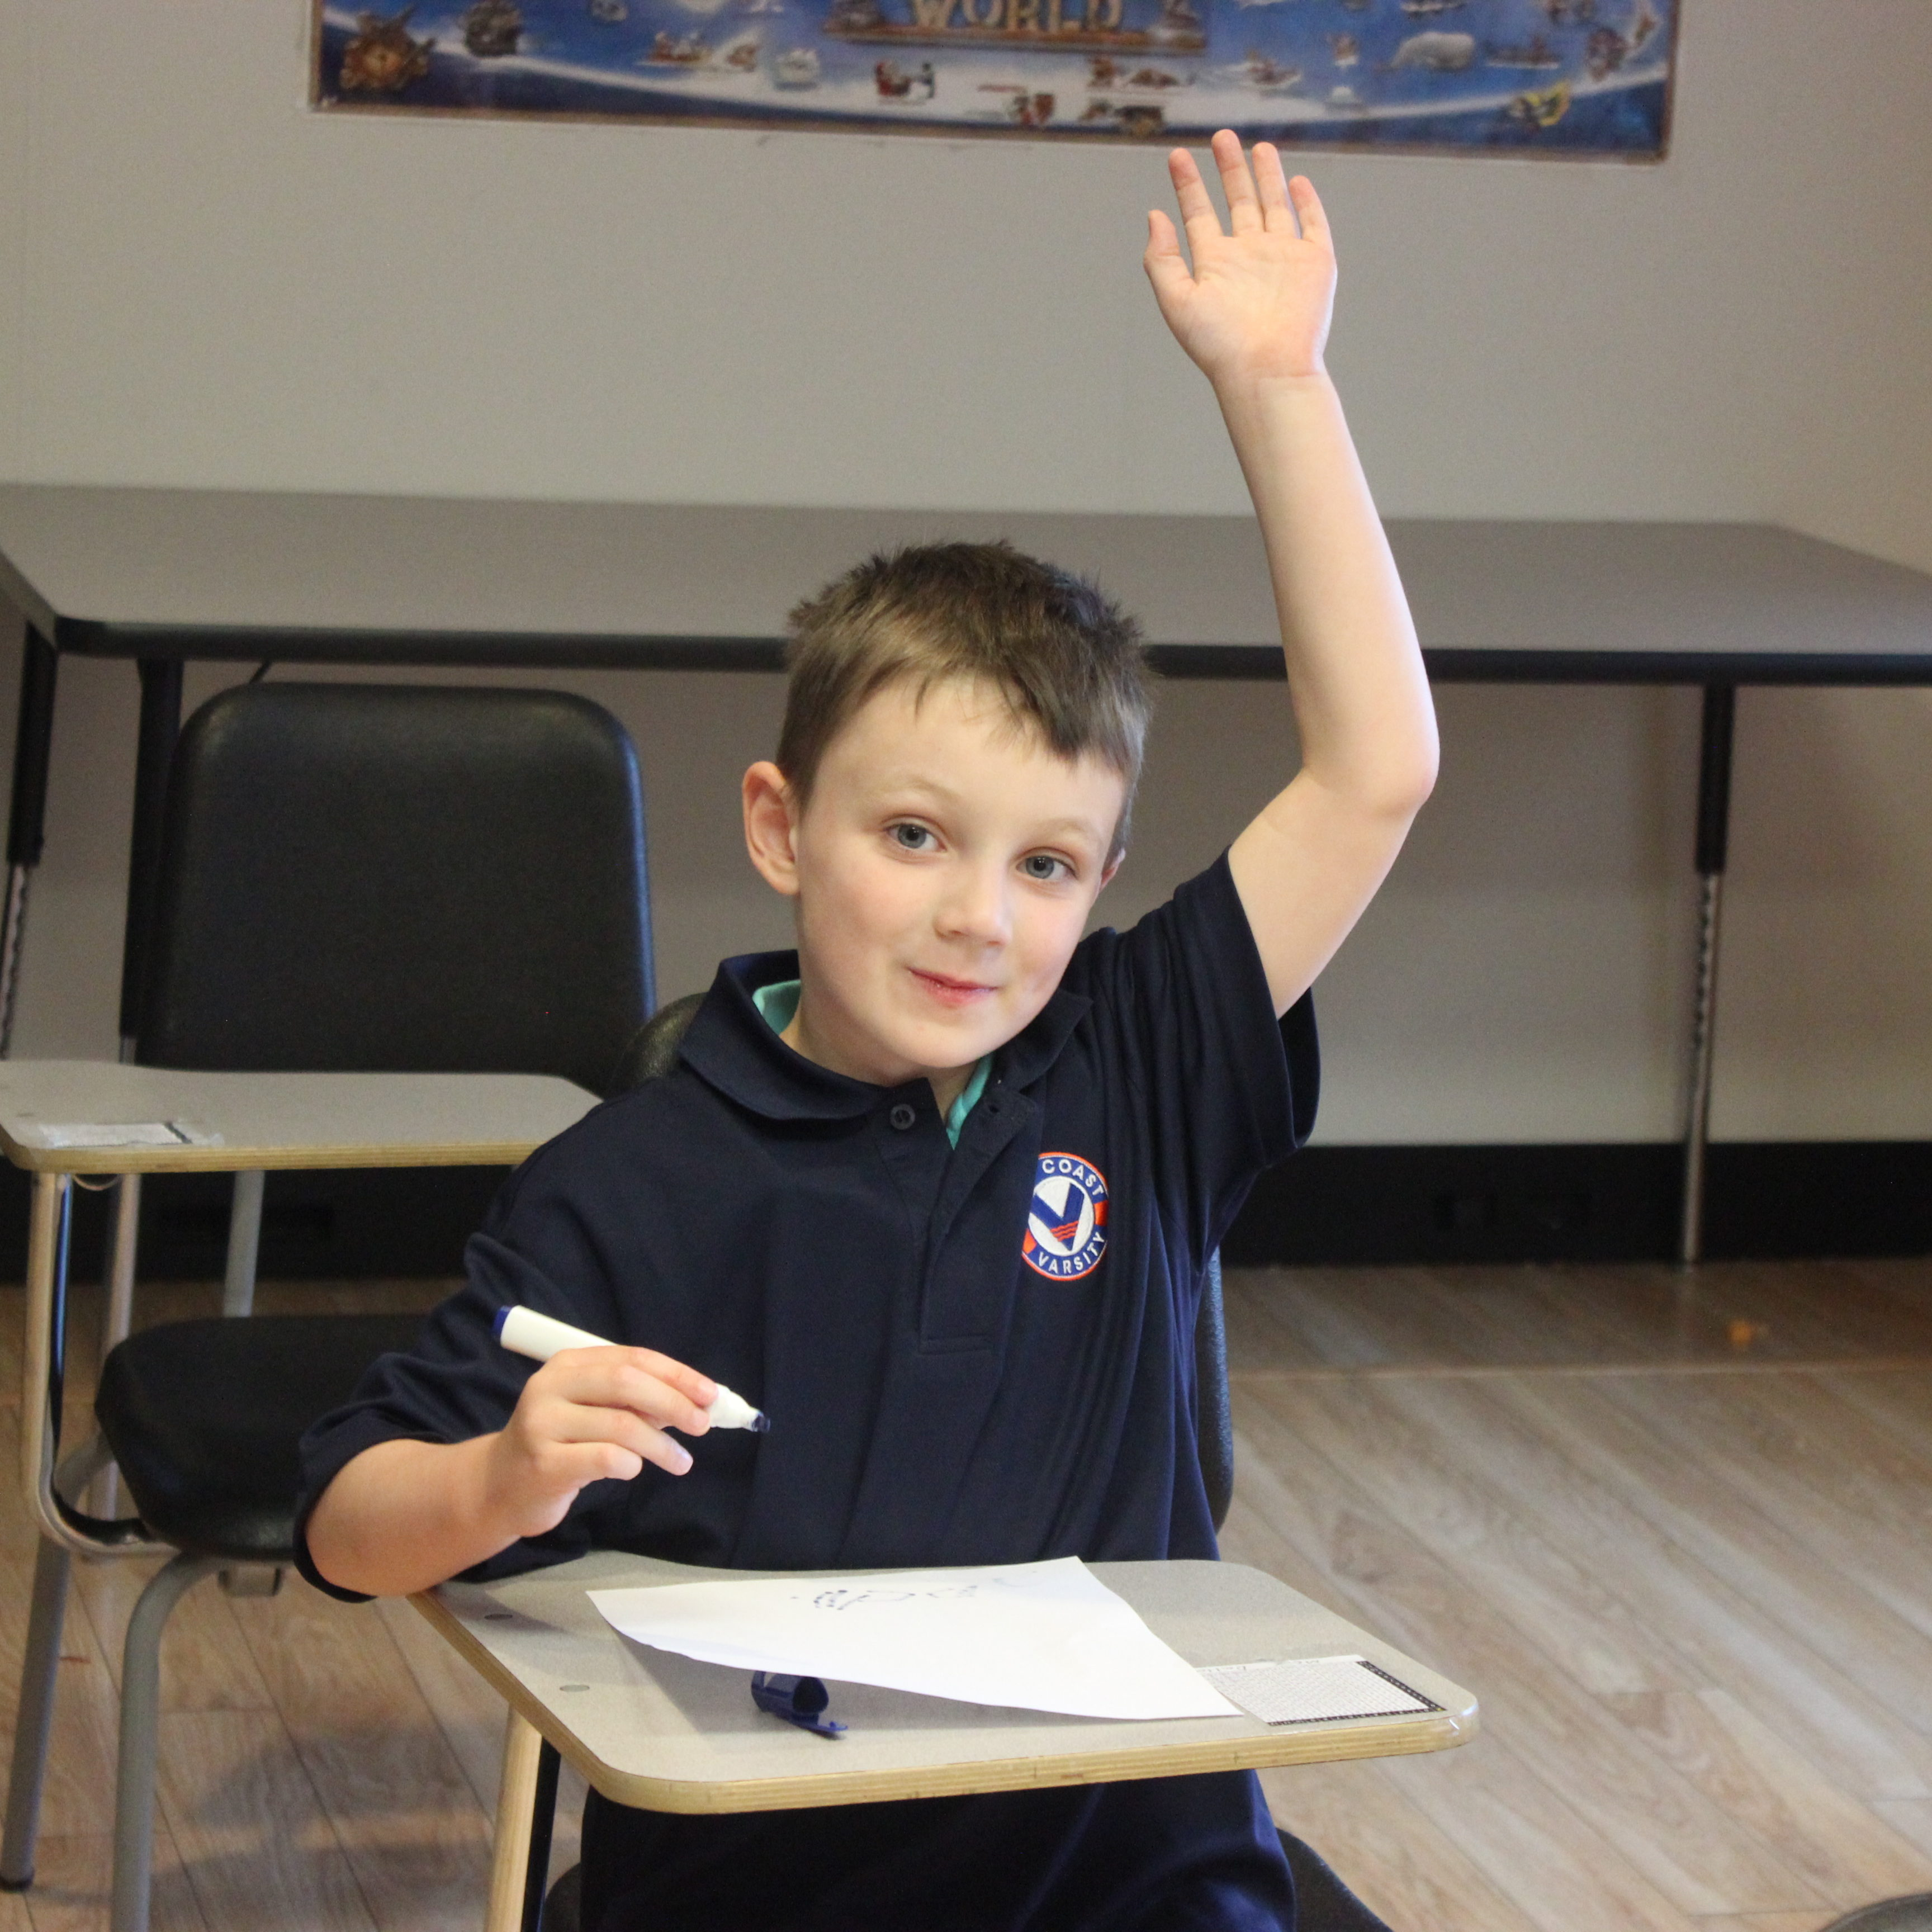 J hand up in class vertical